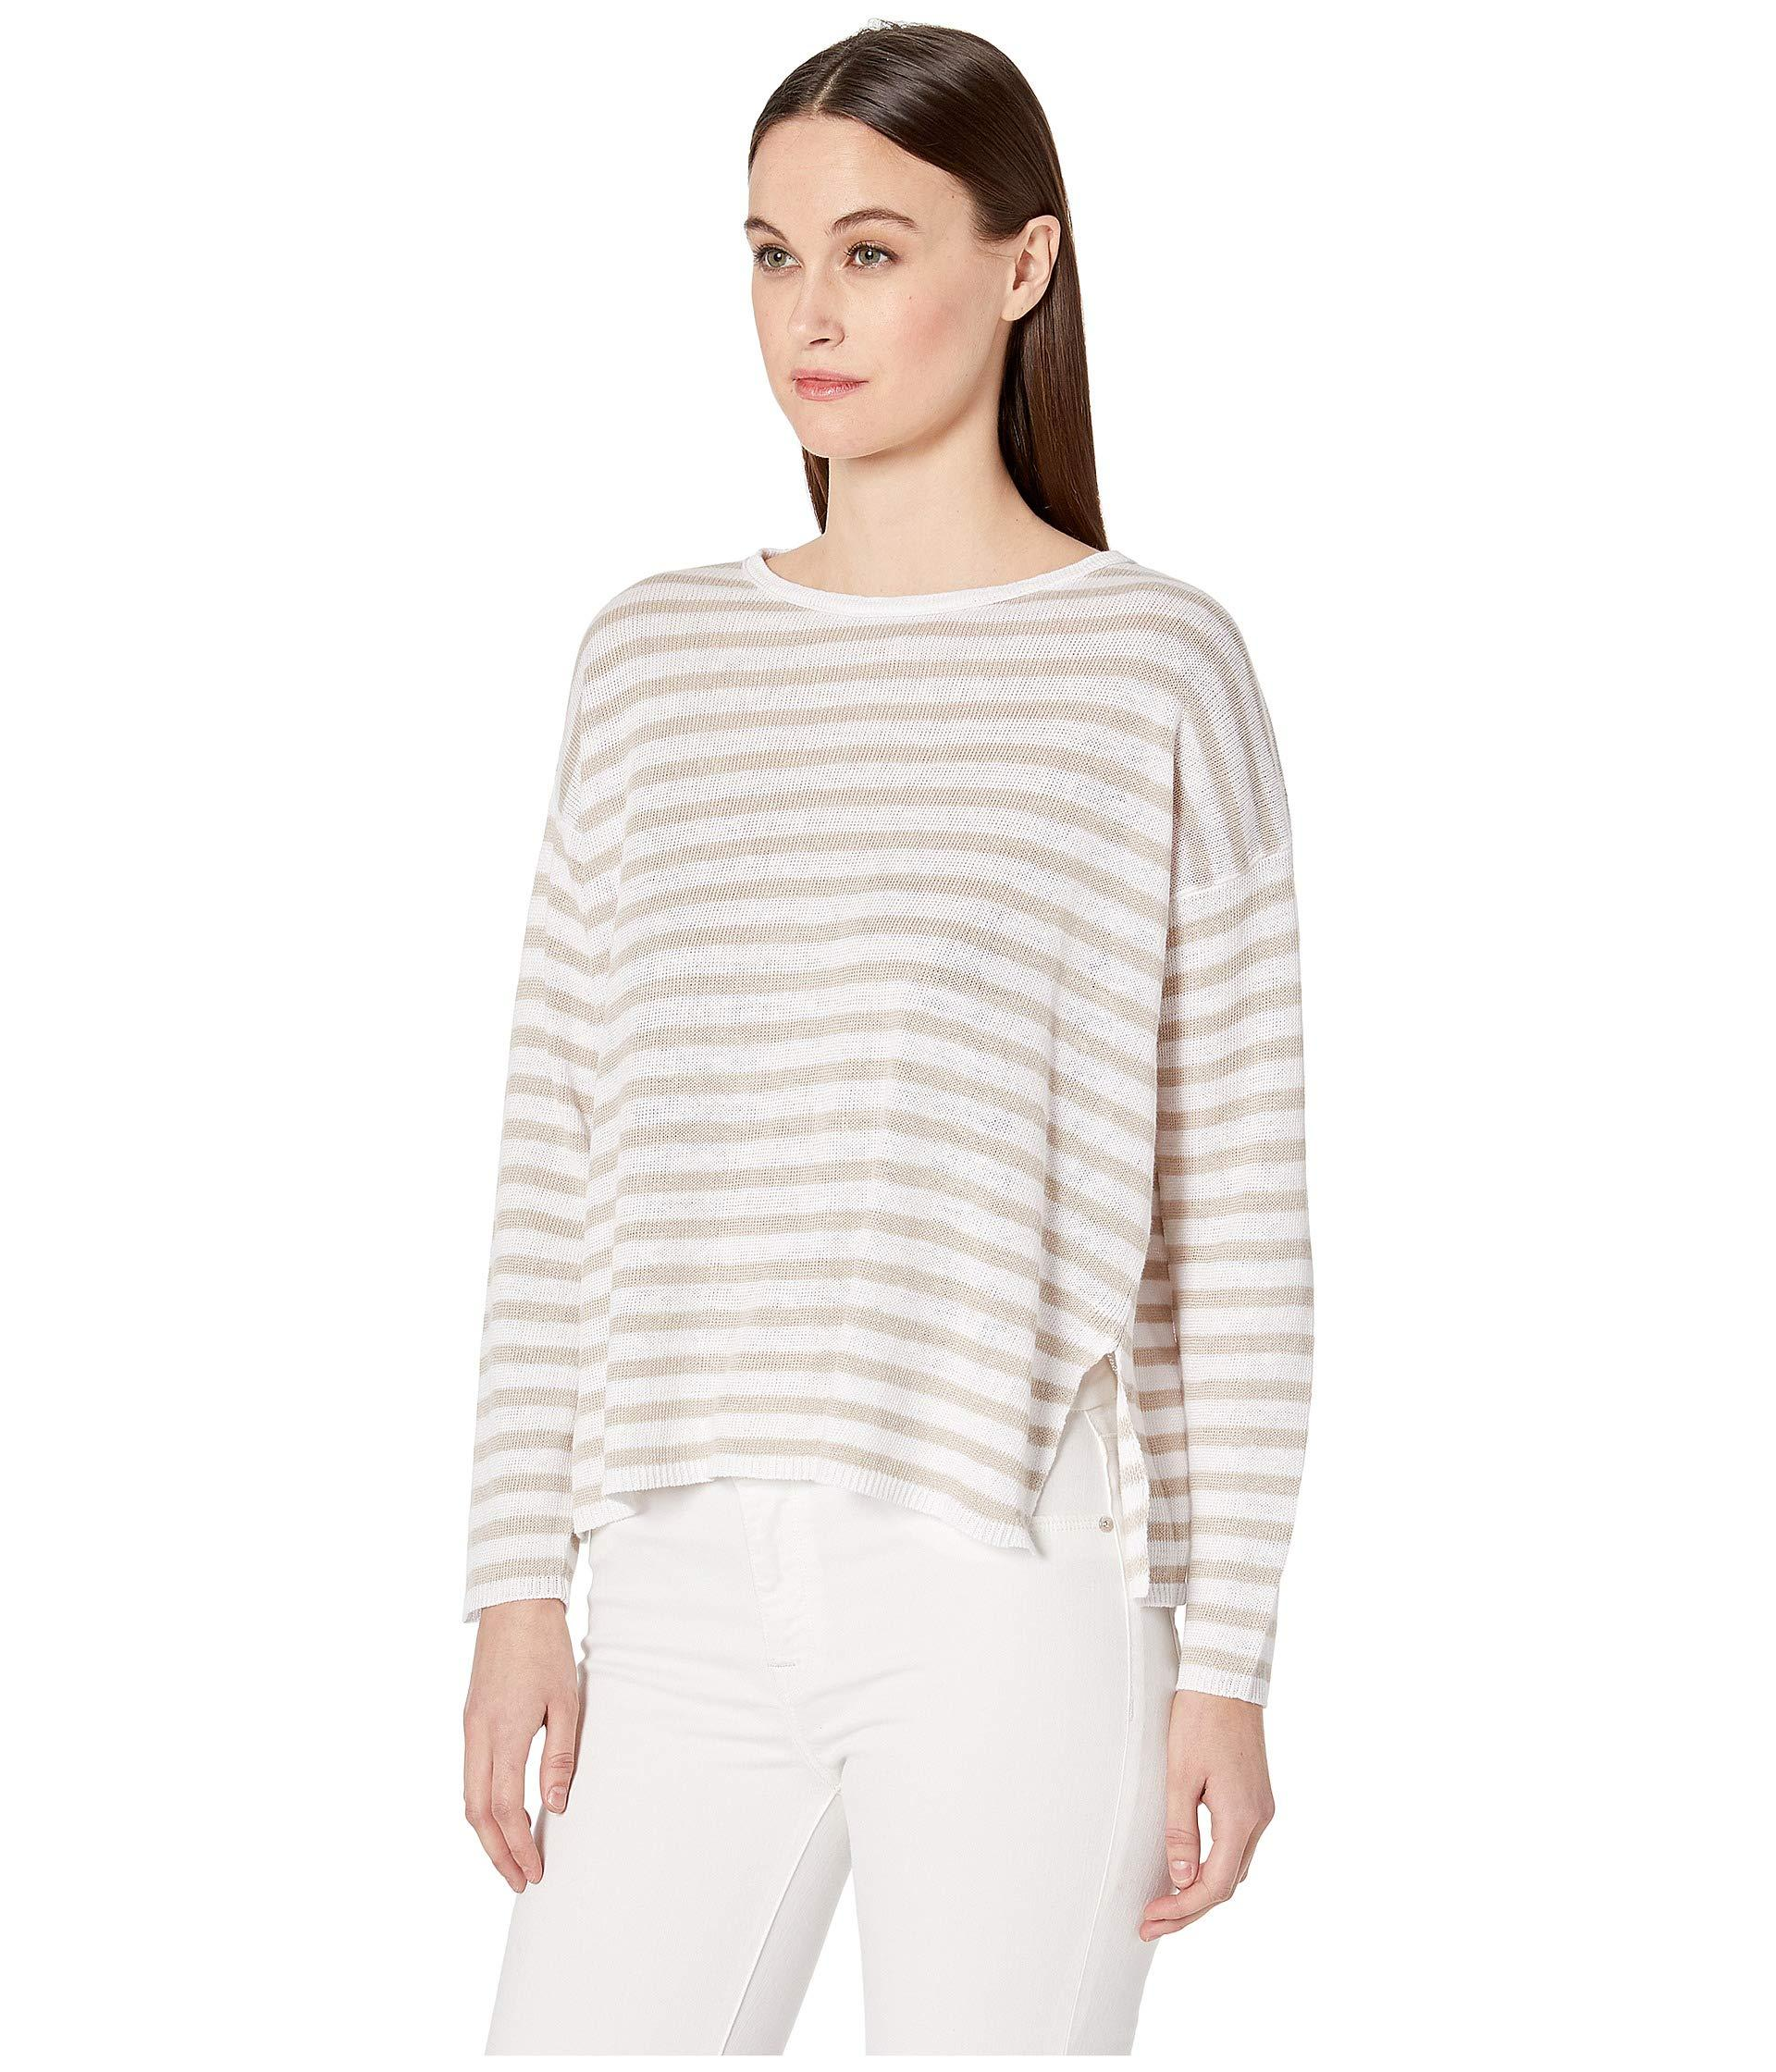 45389e10b6a14d Lyst - Eileen Fisher Round Neck Box-top (white natural) Women s Sweater in  White